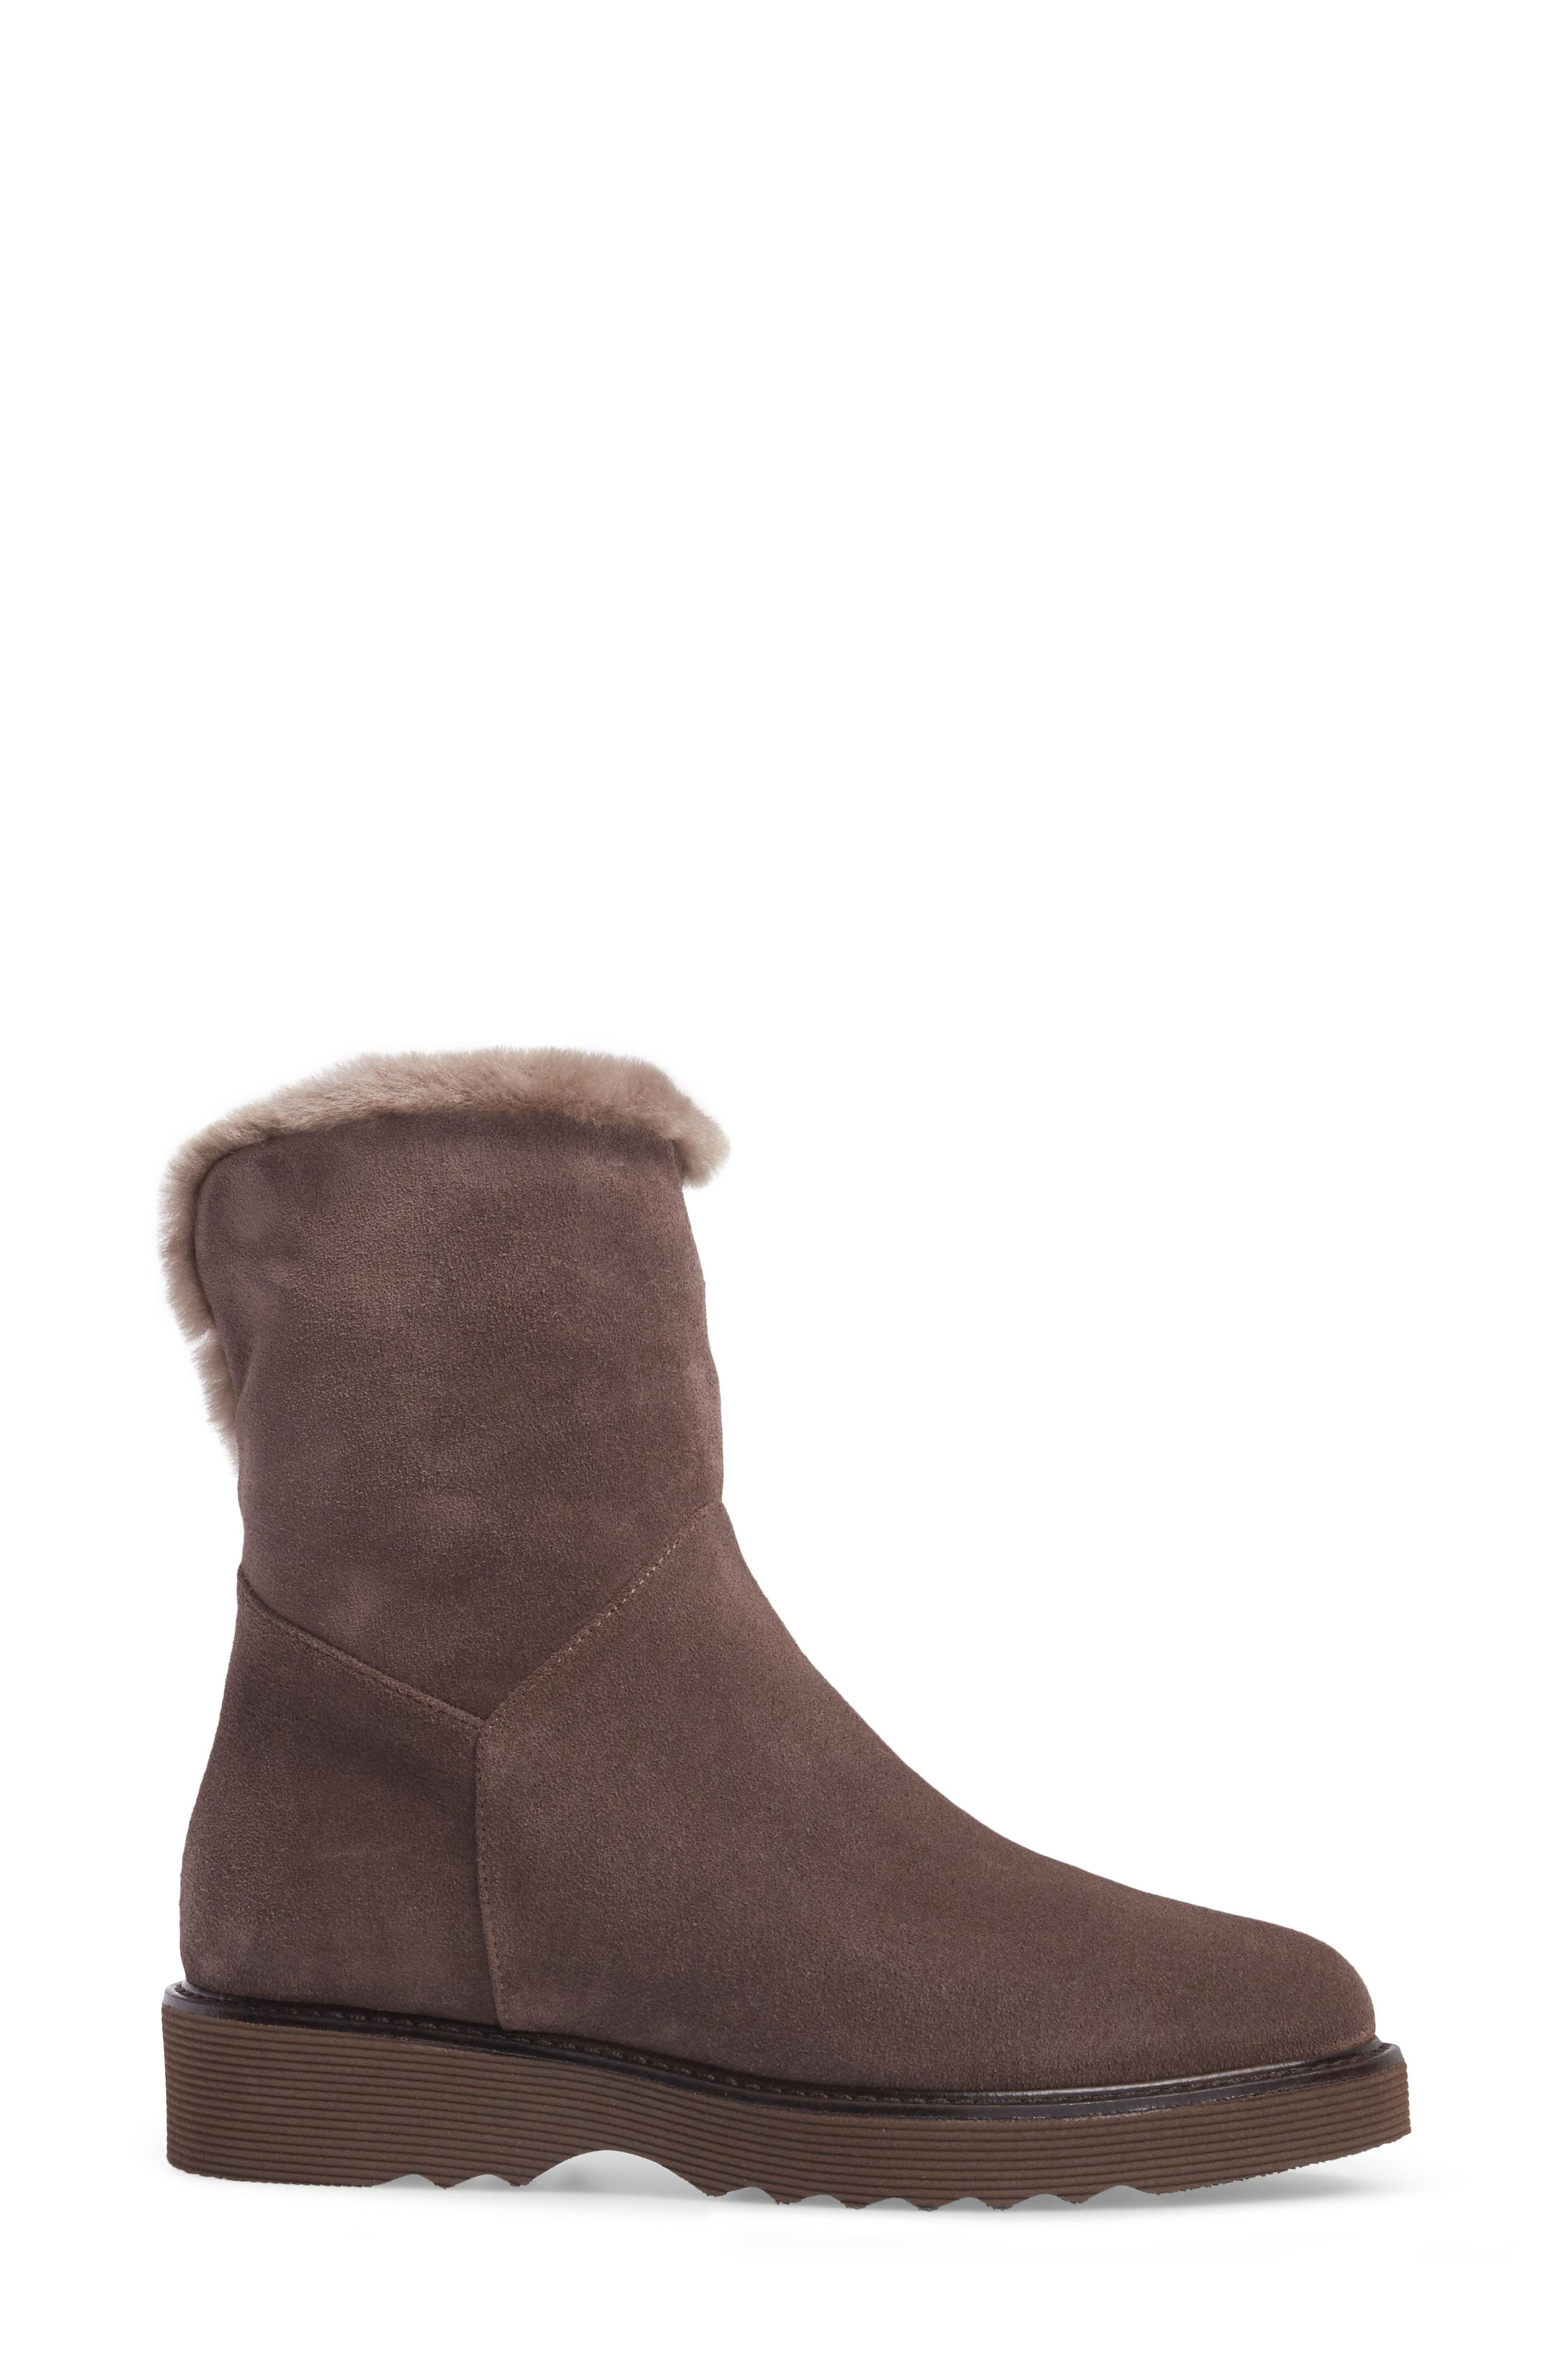 Alternate Image 3  - Aquatalia Kimberly Weatherproof Genuine Shearling Bootie (Women)